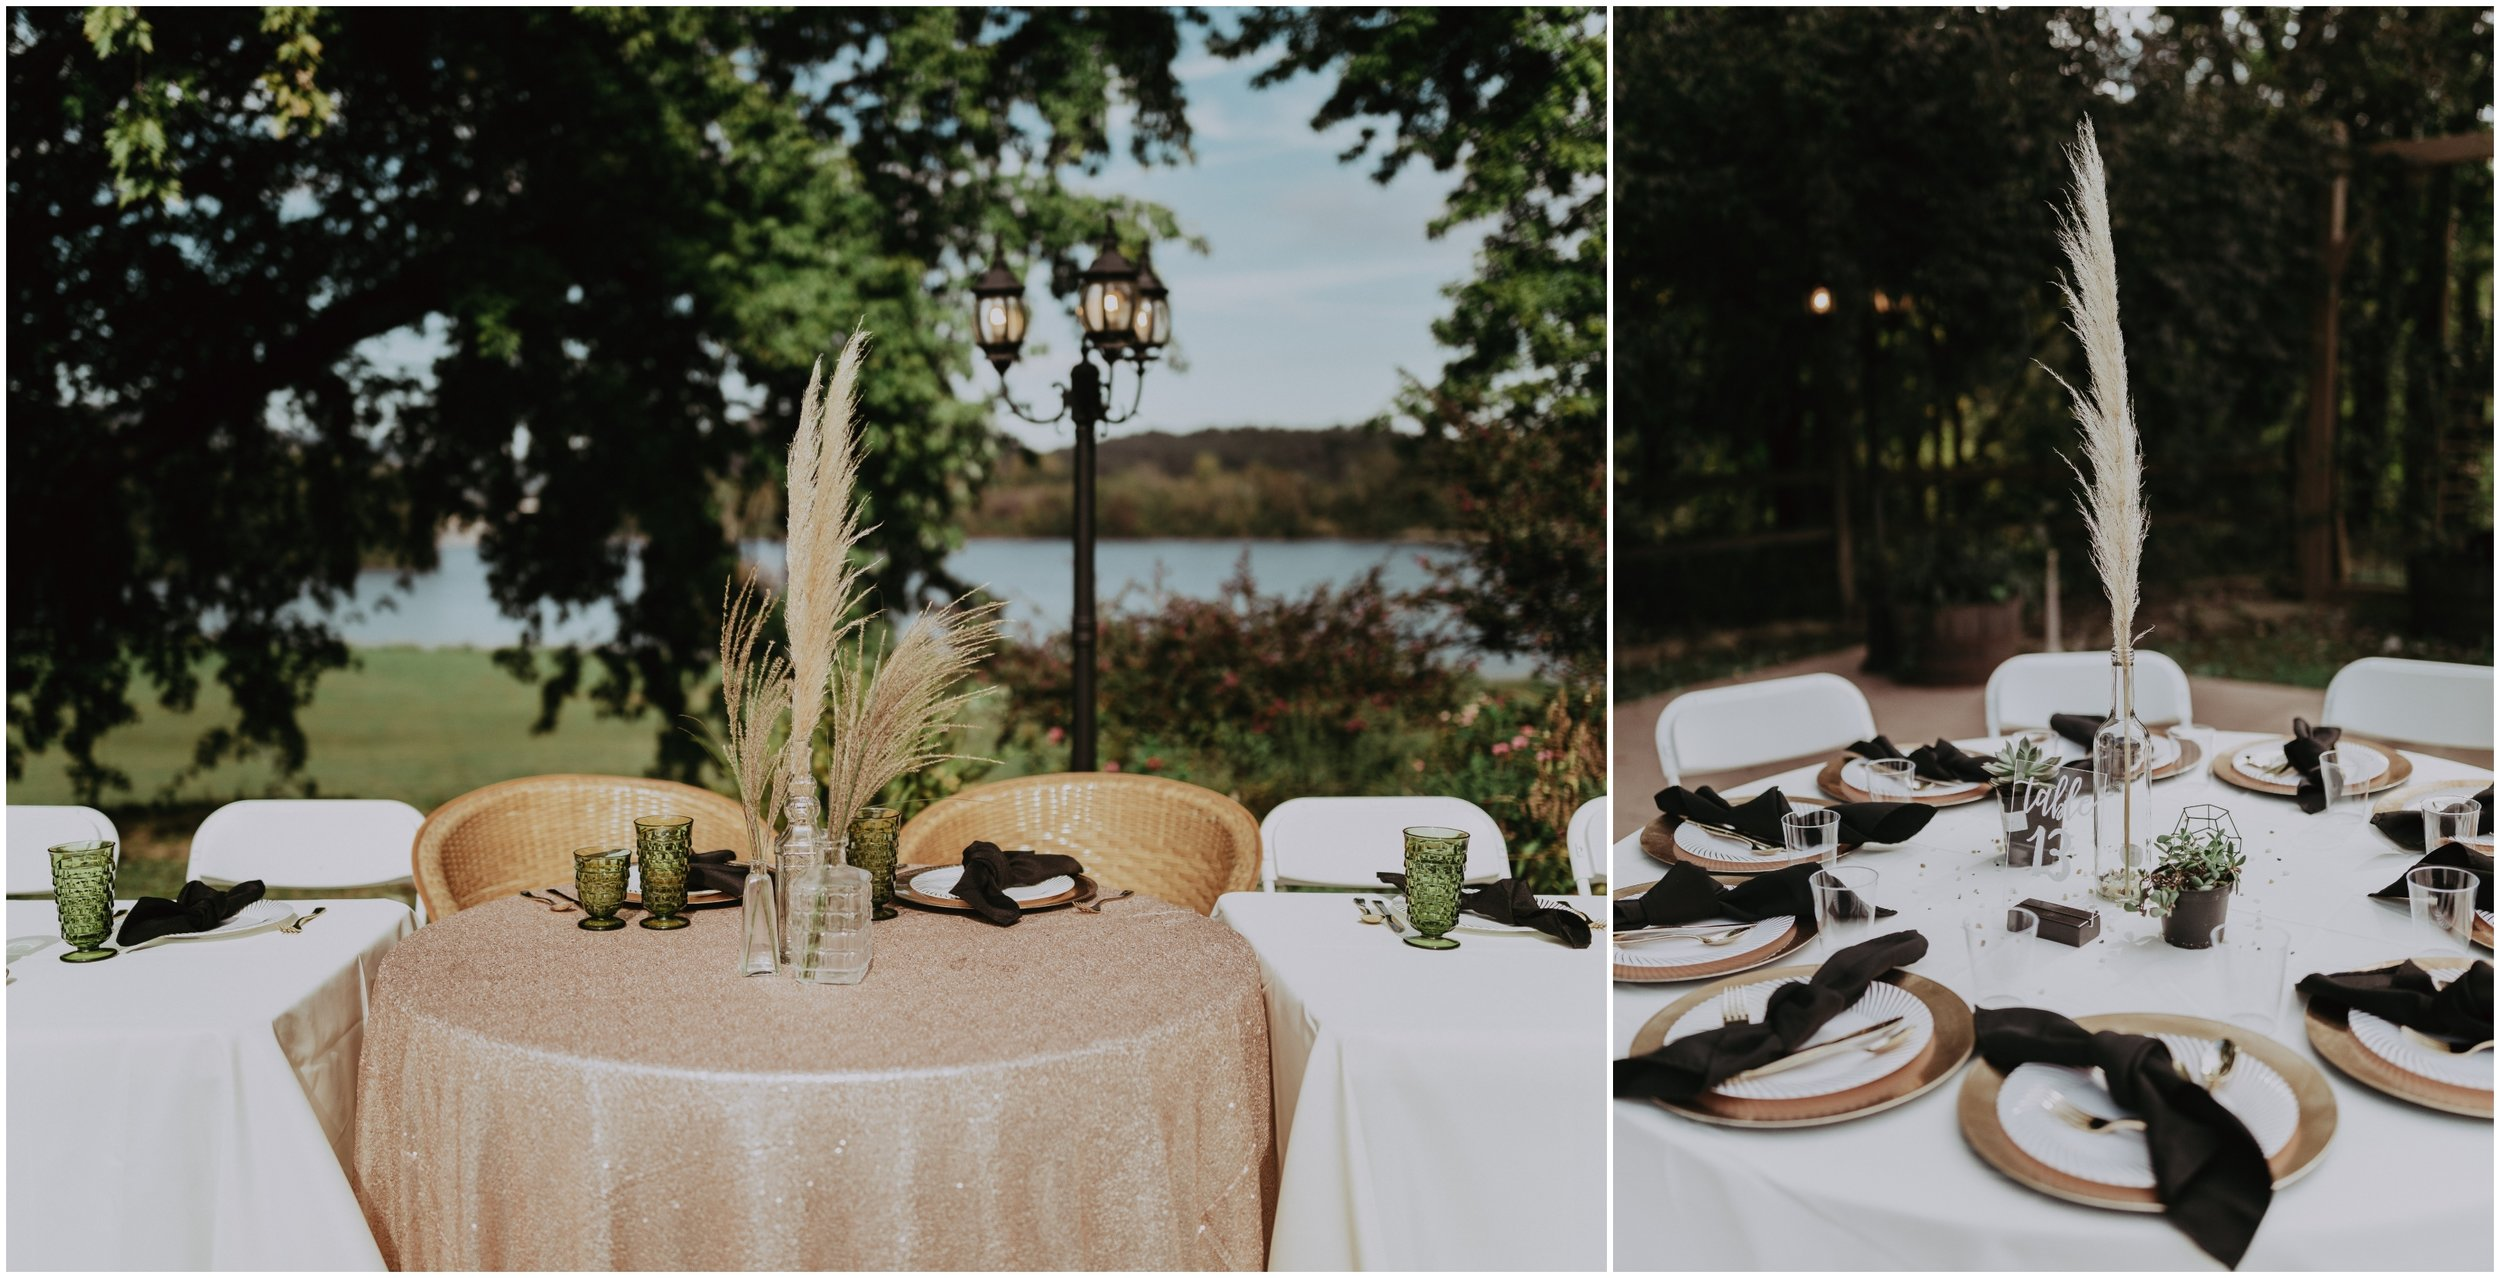 Christina + Miguel's Southwestern Chic Wedding at Tennessee RiverPlace